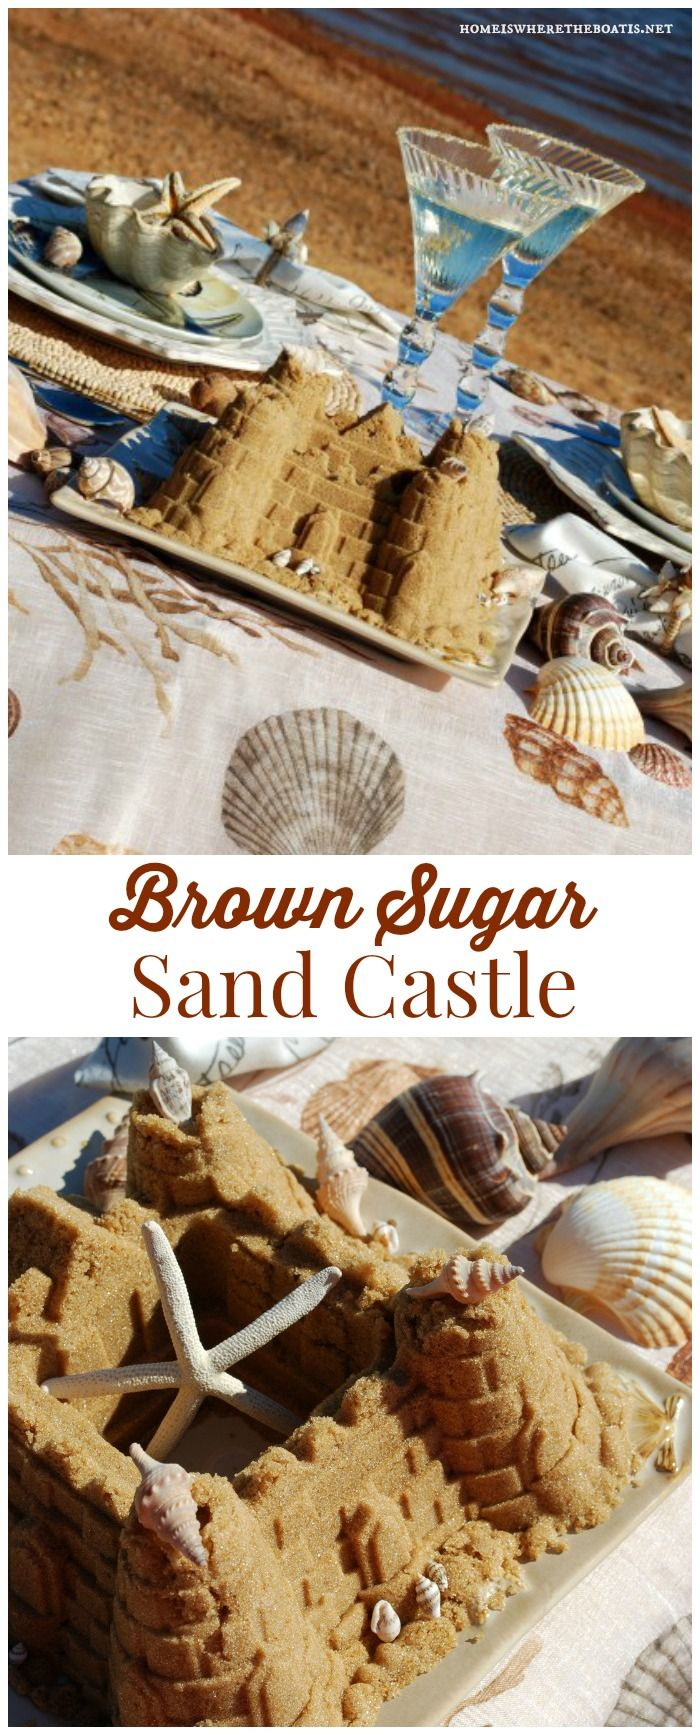 Brown Sugar Sand Castle with Nordic Ware Castle Bundt Pan